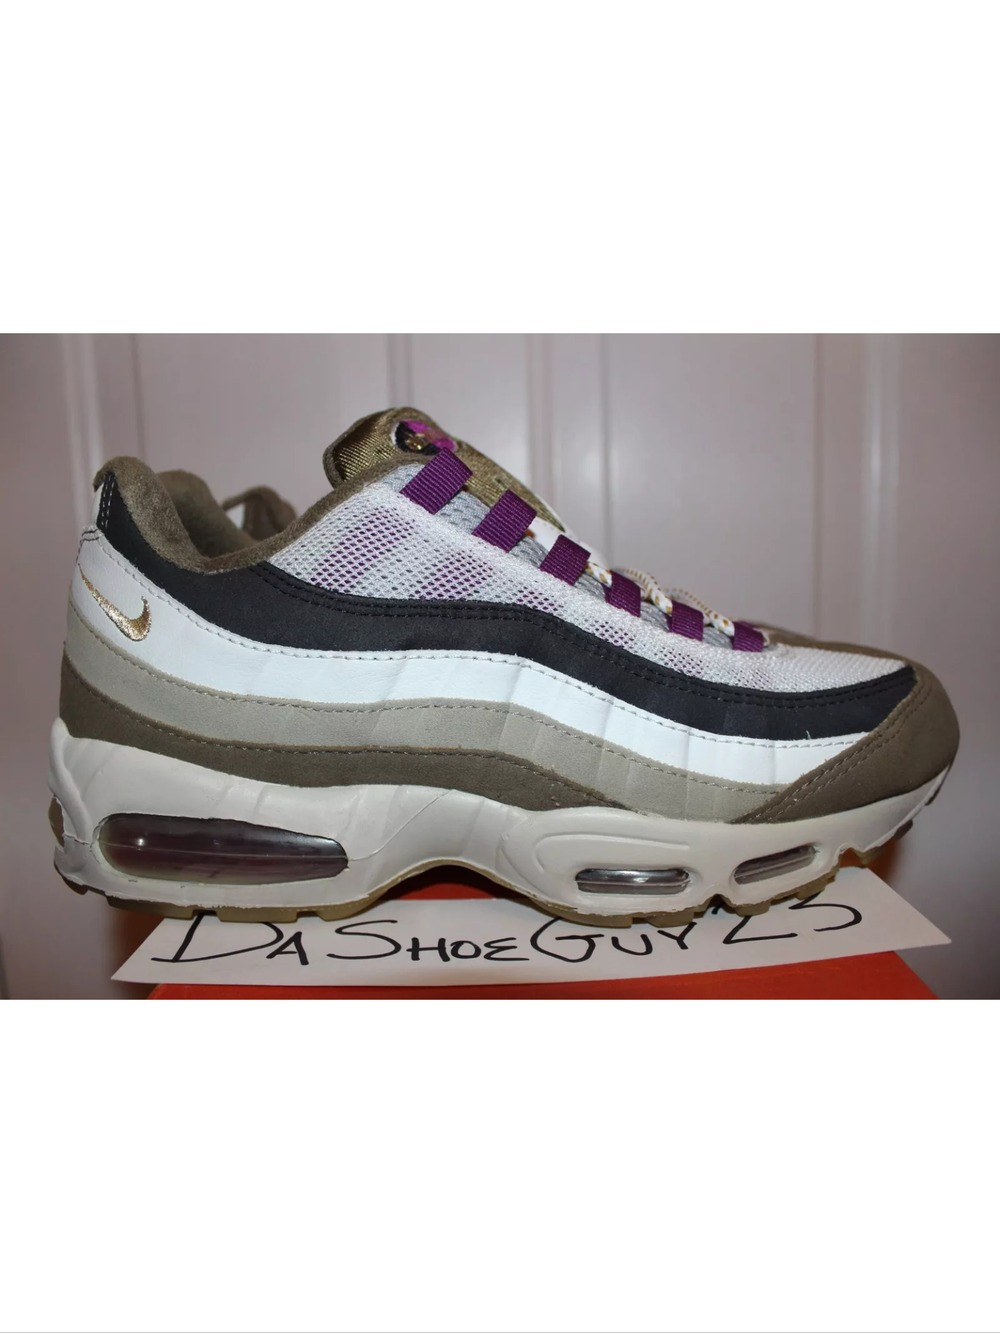 Cheap Air max for sale iOffer